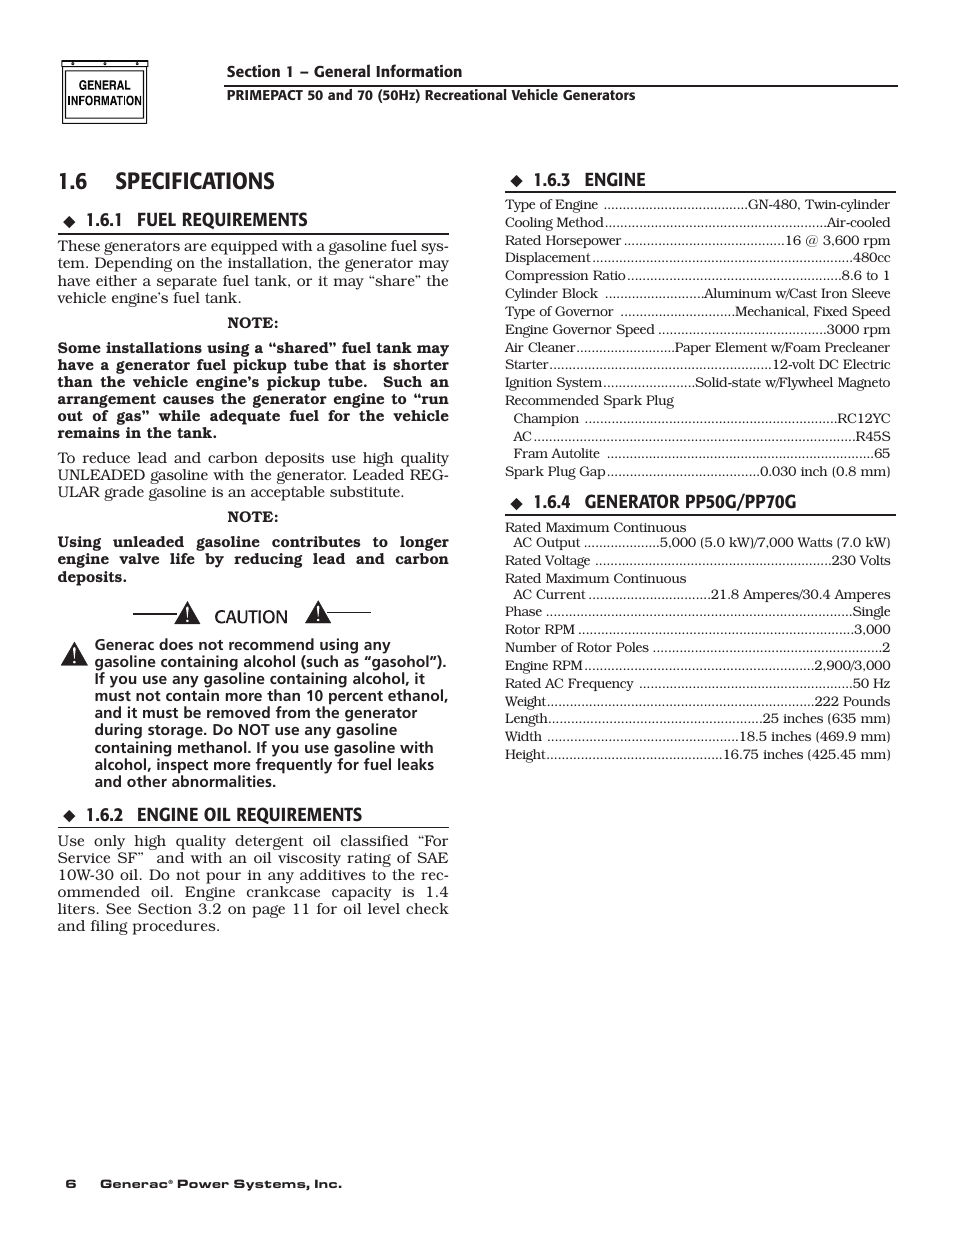 6 specifications | Generac 00784-2 User Manual | Page 8 / 52